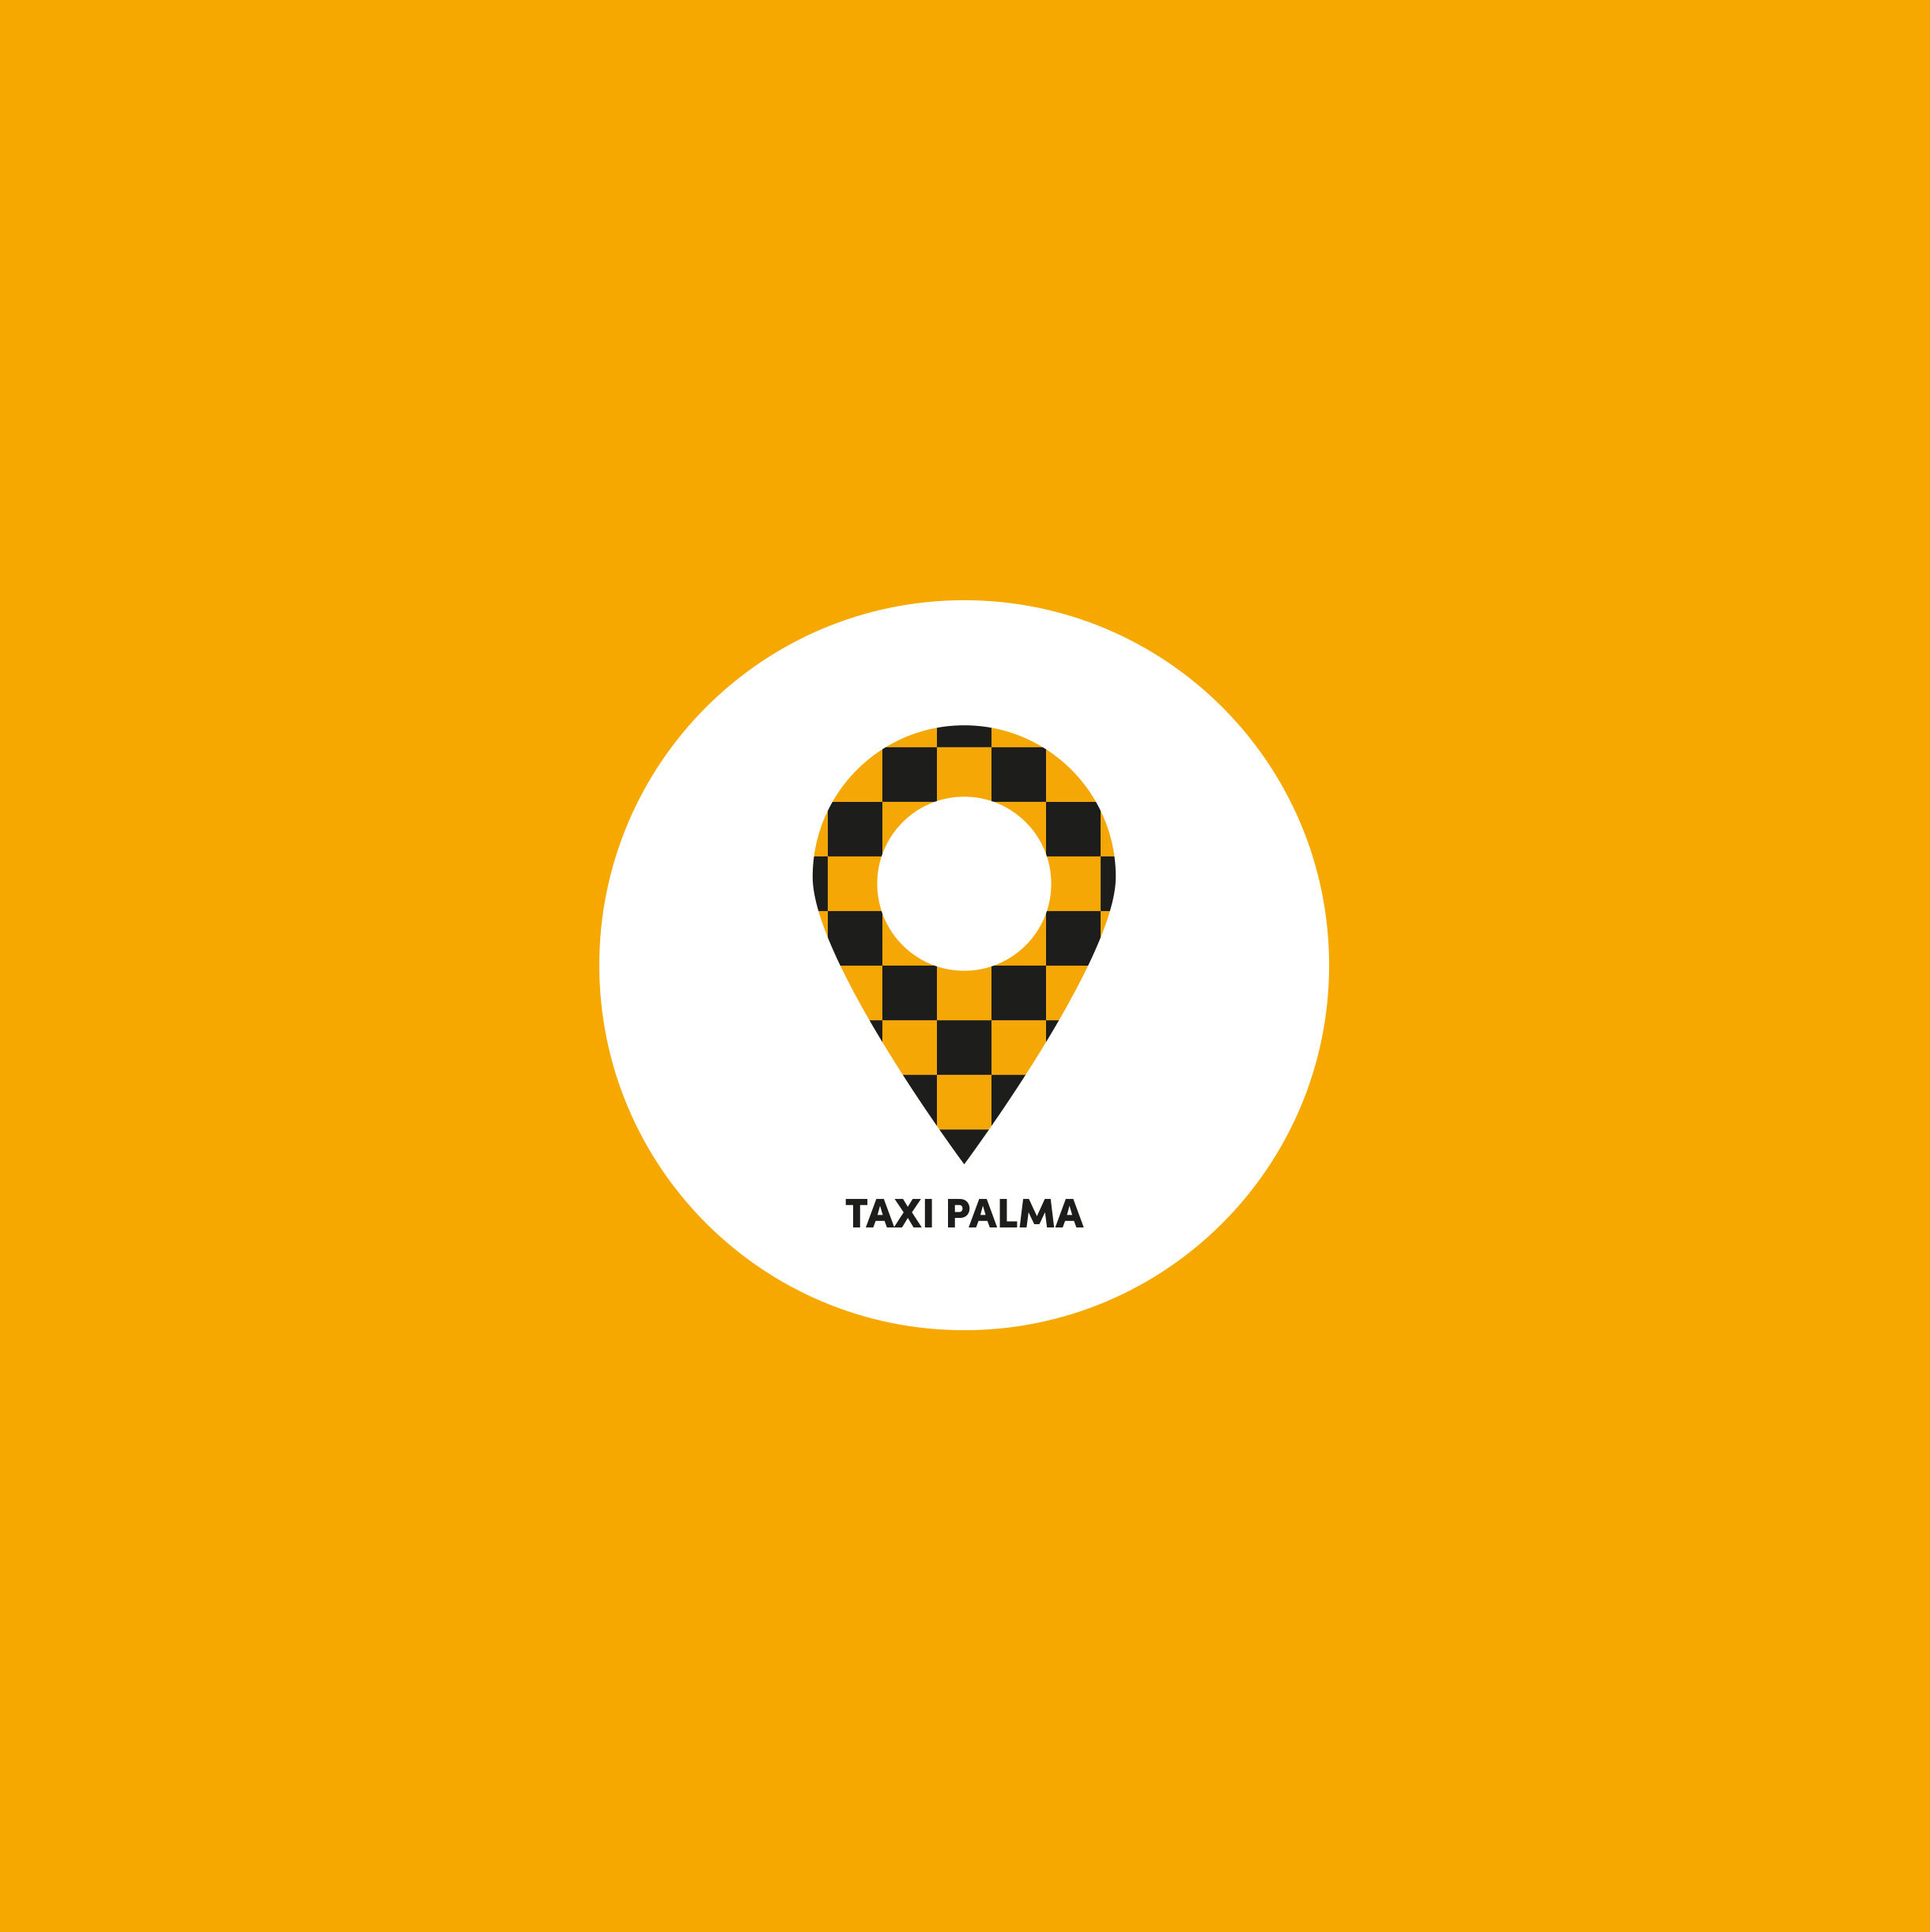 Taxi Palma: UX/UI  by Isabel Maria Llull James - Creative Work